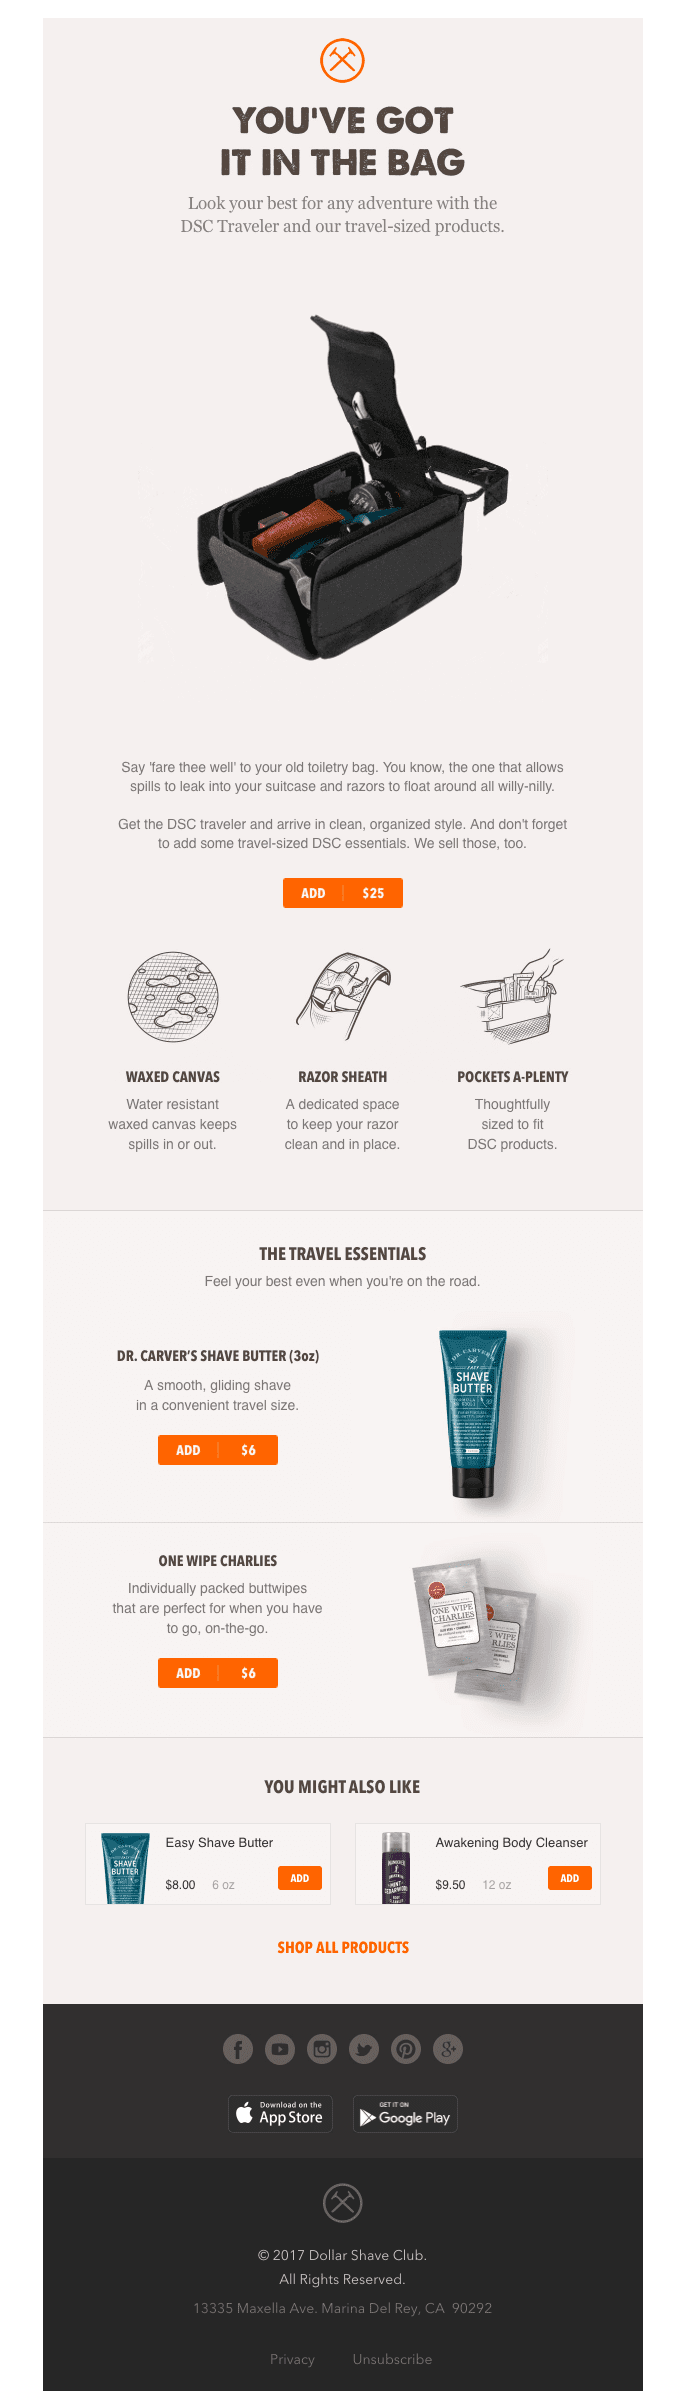 Dollar Shave Club Cross-Sell Email